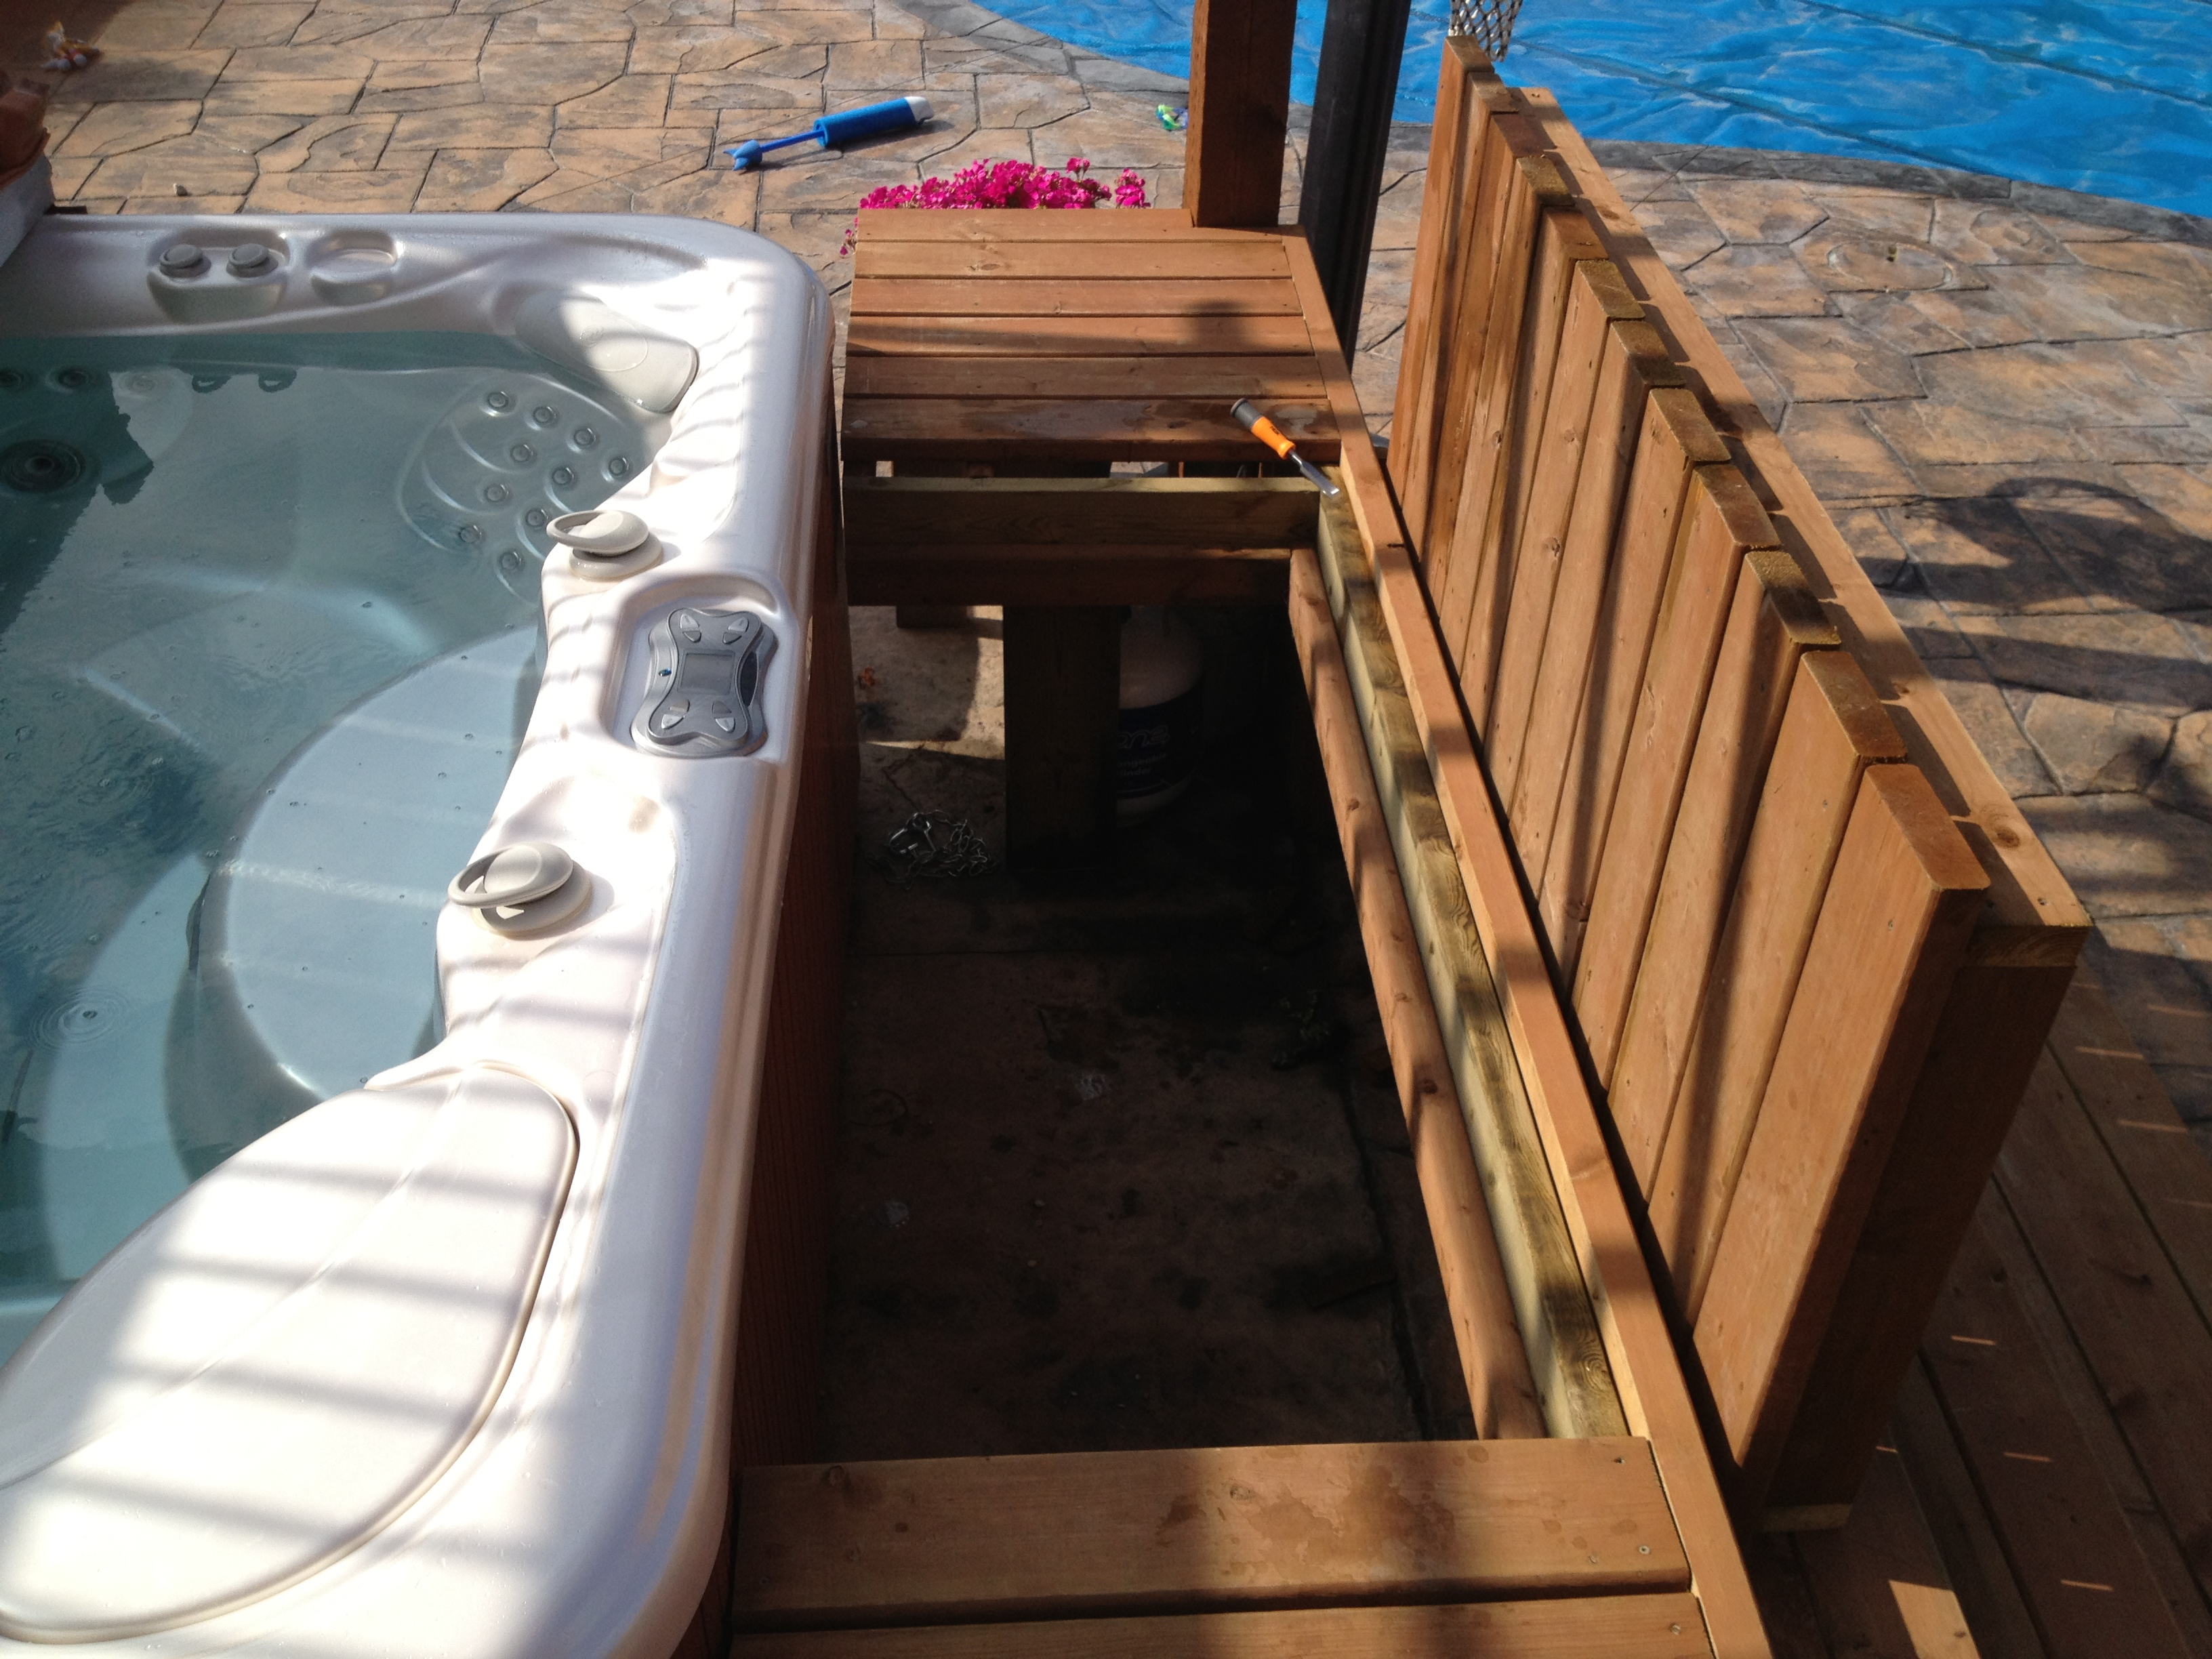 tub patios integrated paquette tubs tures et img with decks hot en archives cat beaulieu cl deck